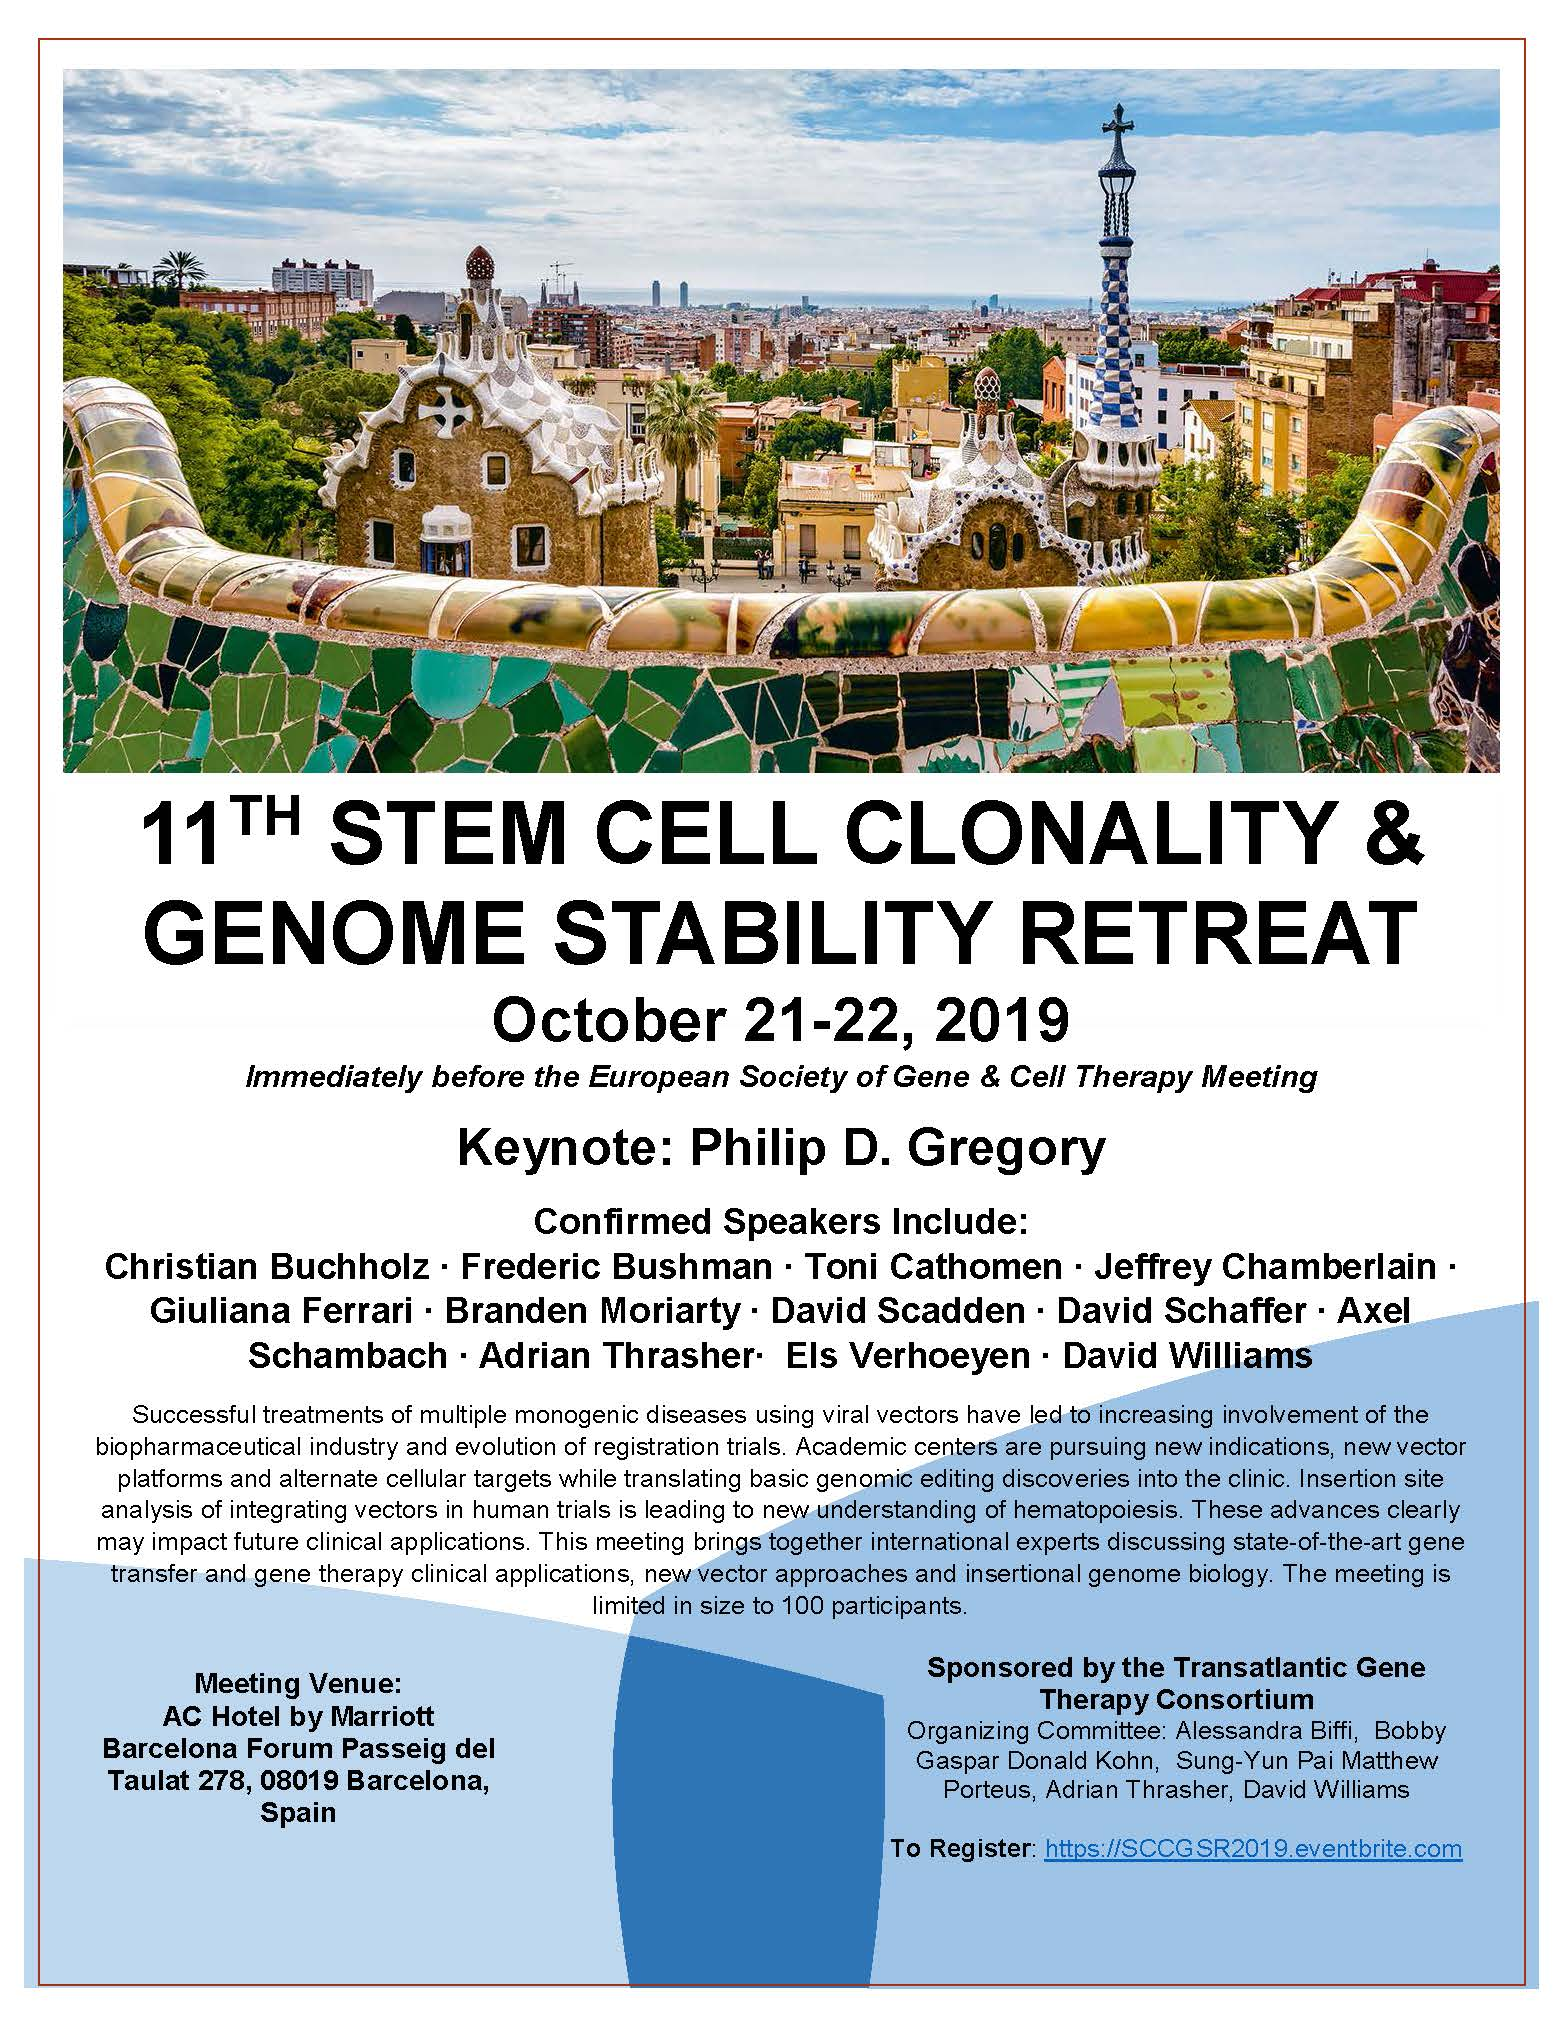 11th Stem Cell Clonality and Genome Stability Retreat